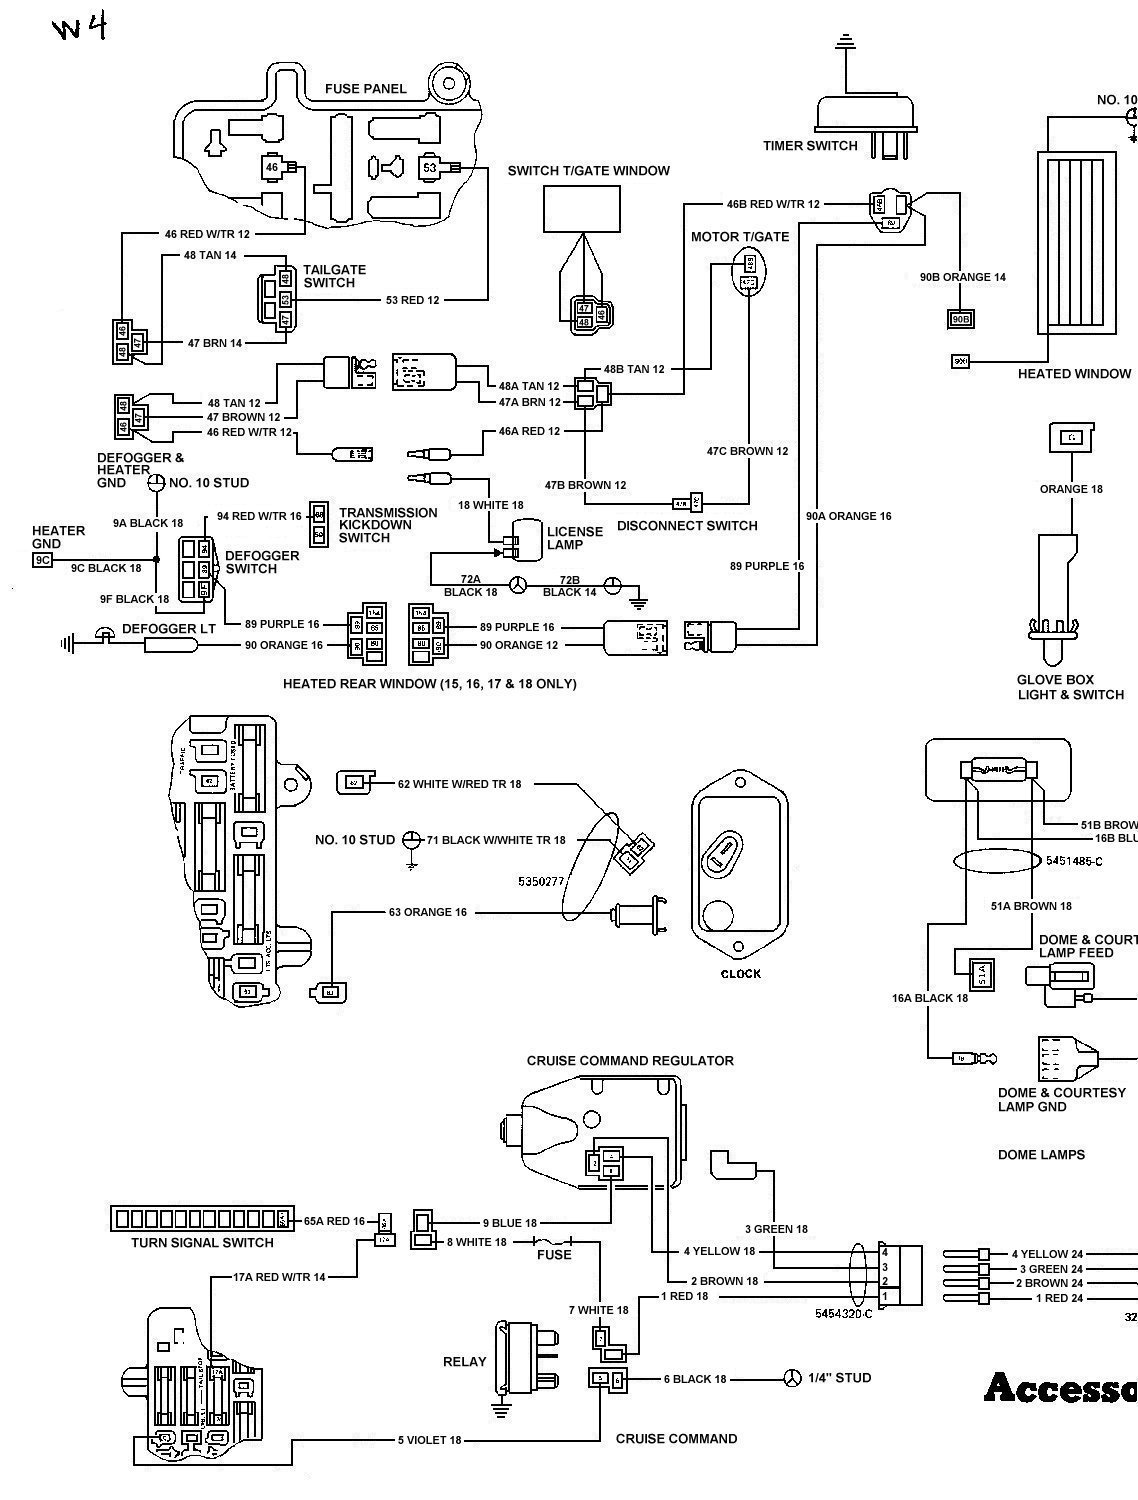 [SCHEMATICS_4LK]  DIAGRAM] Jeep Cj5 Ignition Wiring Diagram FULL Version HD Quality Wiring  Diagram - TOGMUSIC.STUDIO-OMEGA.FR | 79 Cj5 Wiring Diagram |  | Studio Omega